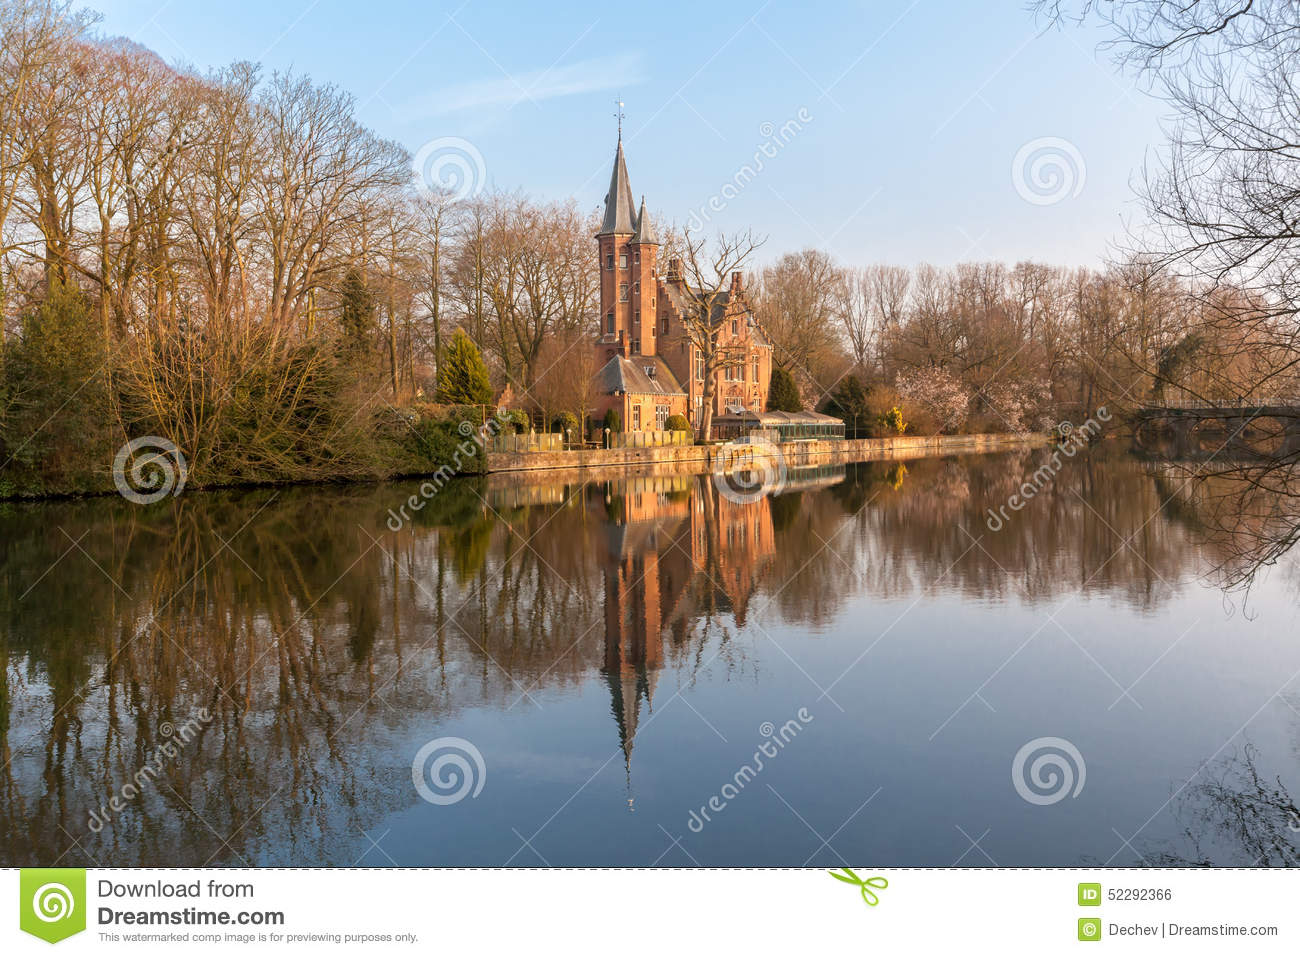 Comstock Park (MI) United States  city photos : Medieval Building Castle On Love Lake In Bruges, Belgium Stock Photo ...